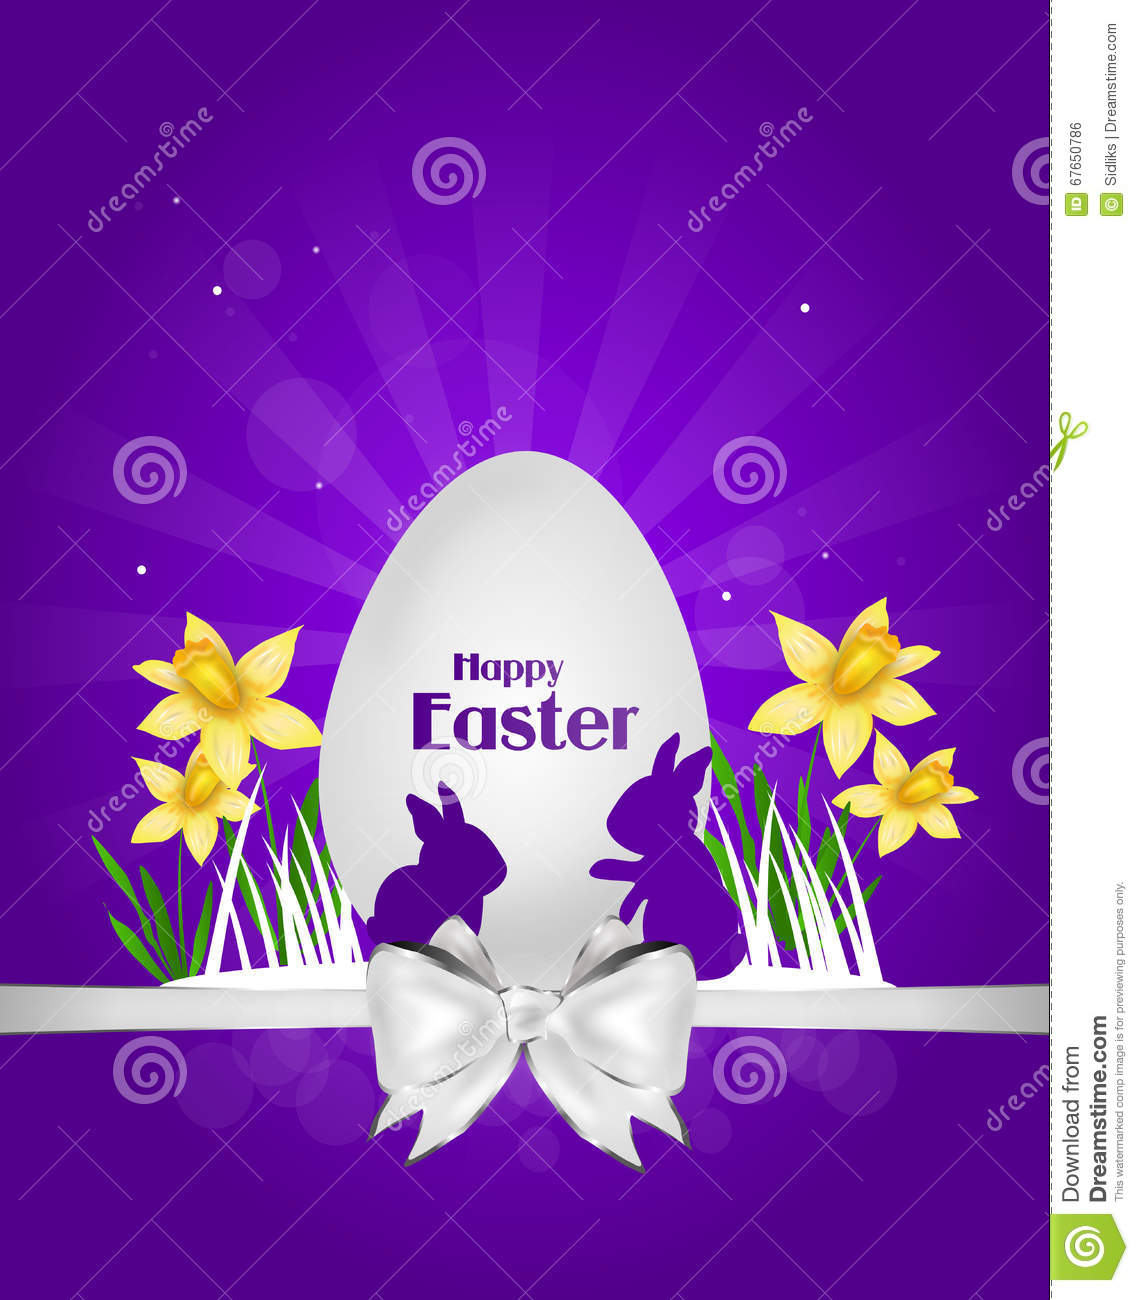 Happy easter greeting card stock illustration illustration of happy easter greeting card m4hsunfo